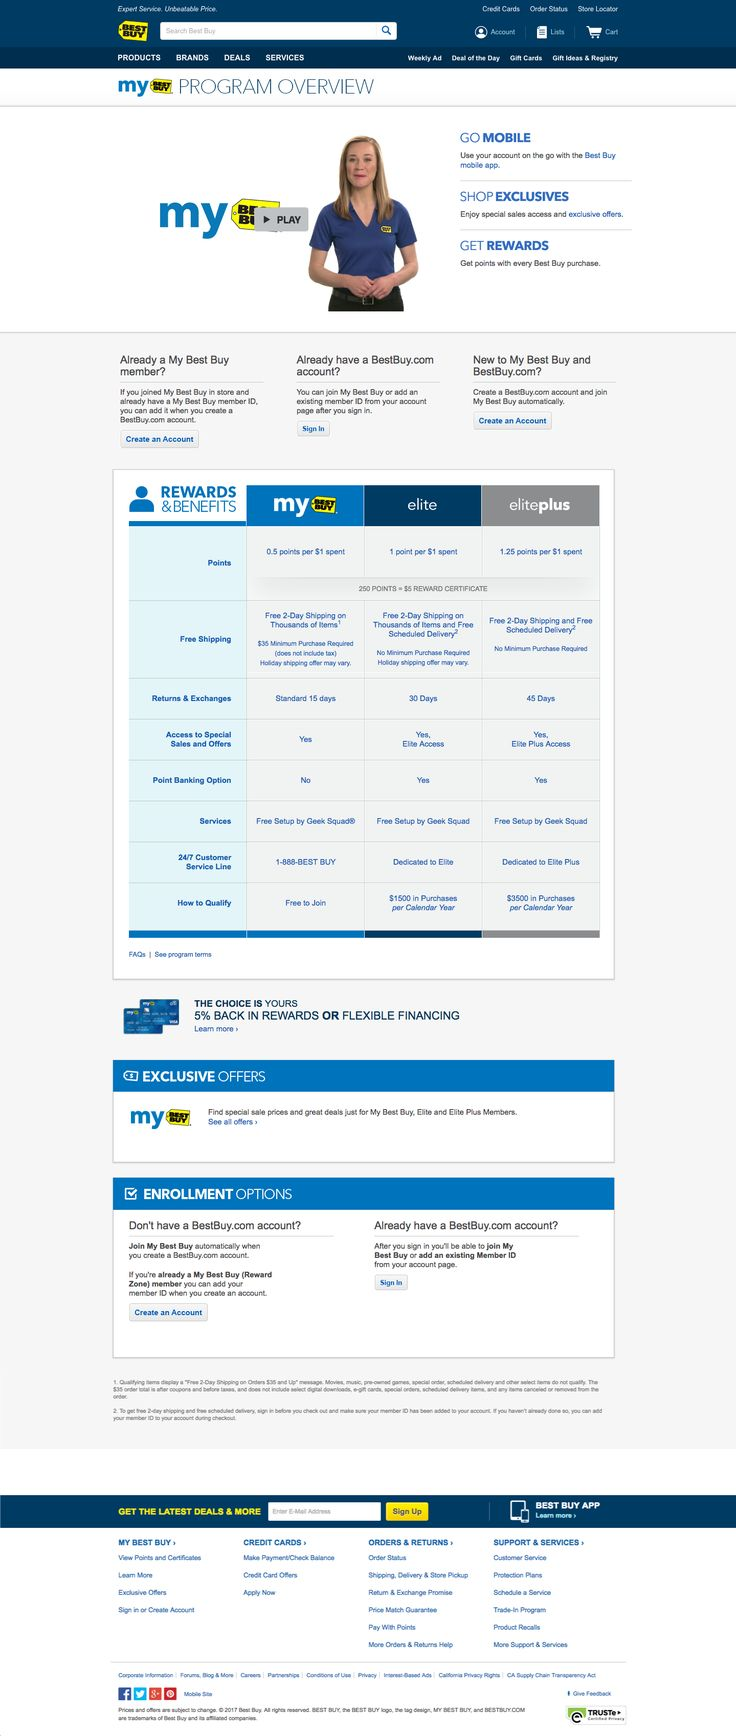 Best Buy combines video and clean tables to communicate the benefits of their tiered my best buy program.